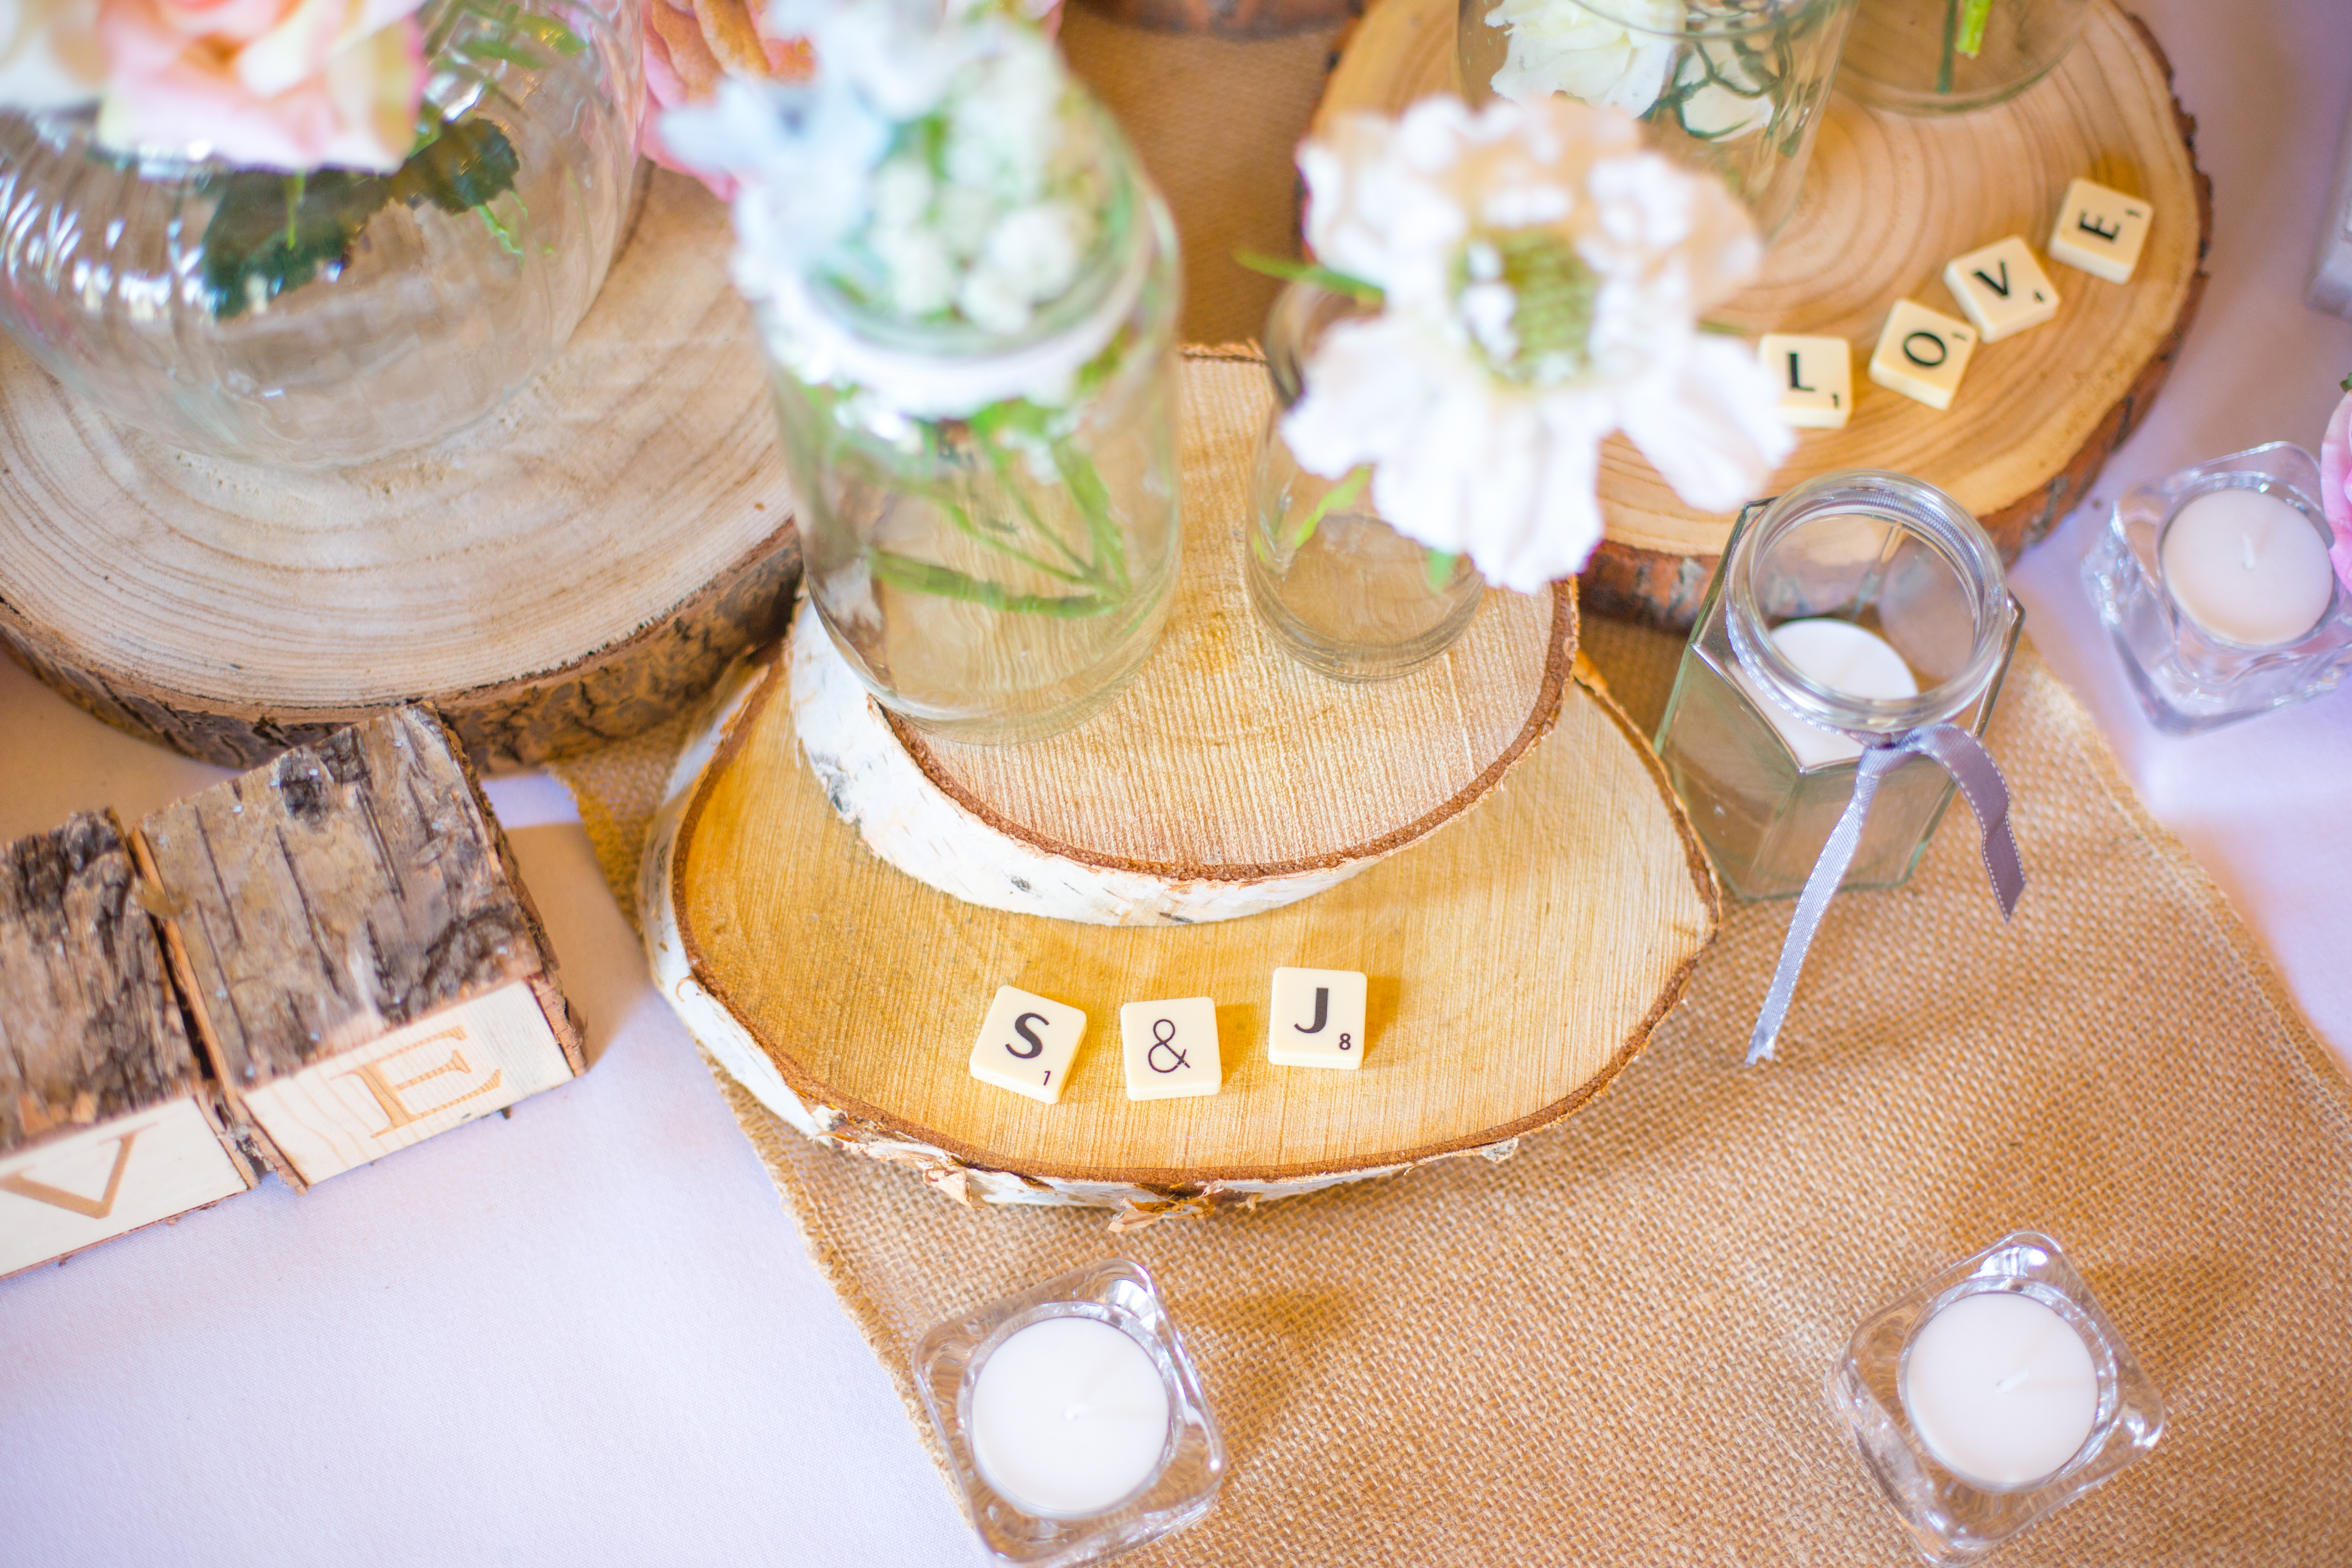 Initials Scrabble Pieces - Sophia's Final Touch - Venue Styling - Weddings